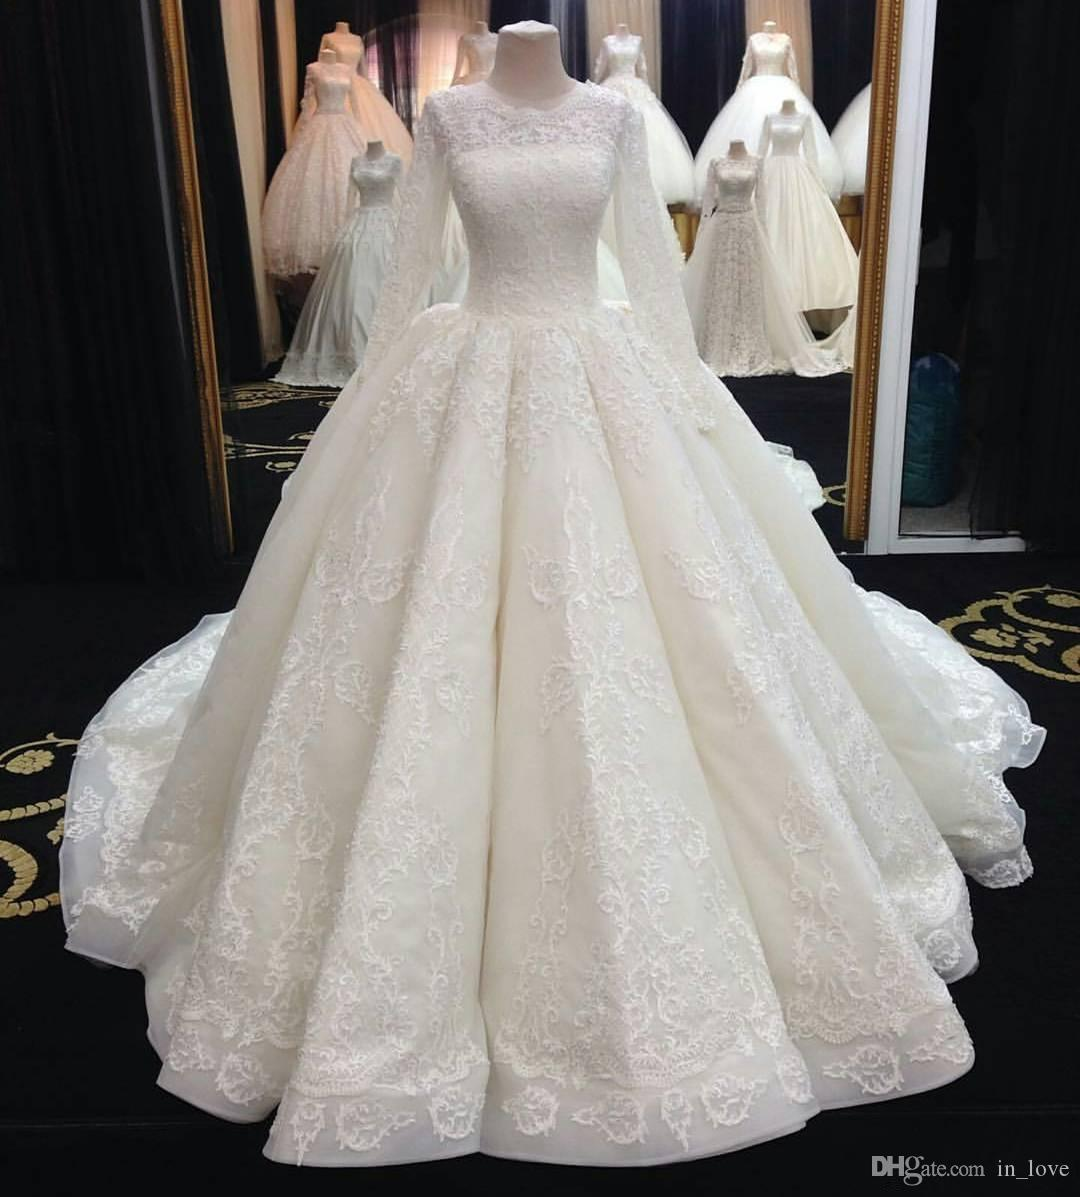 2017 Winter Muslim Wedding Dresses Long Sleeve Ball Gown Full Lace ...